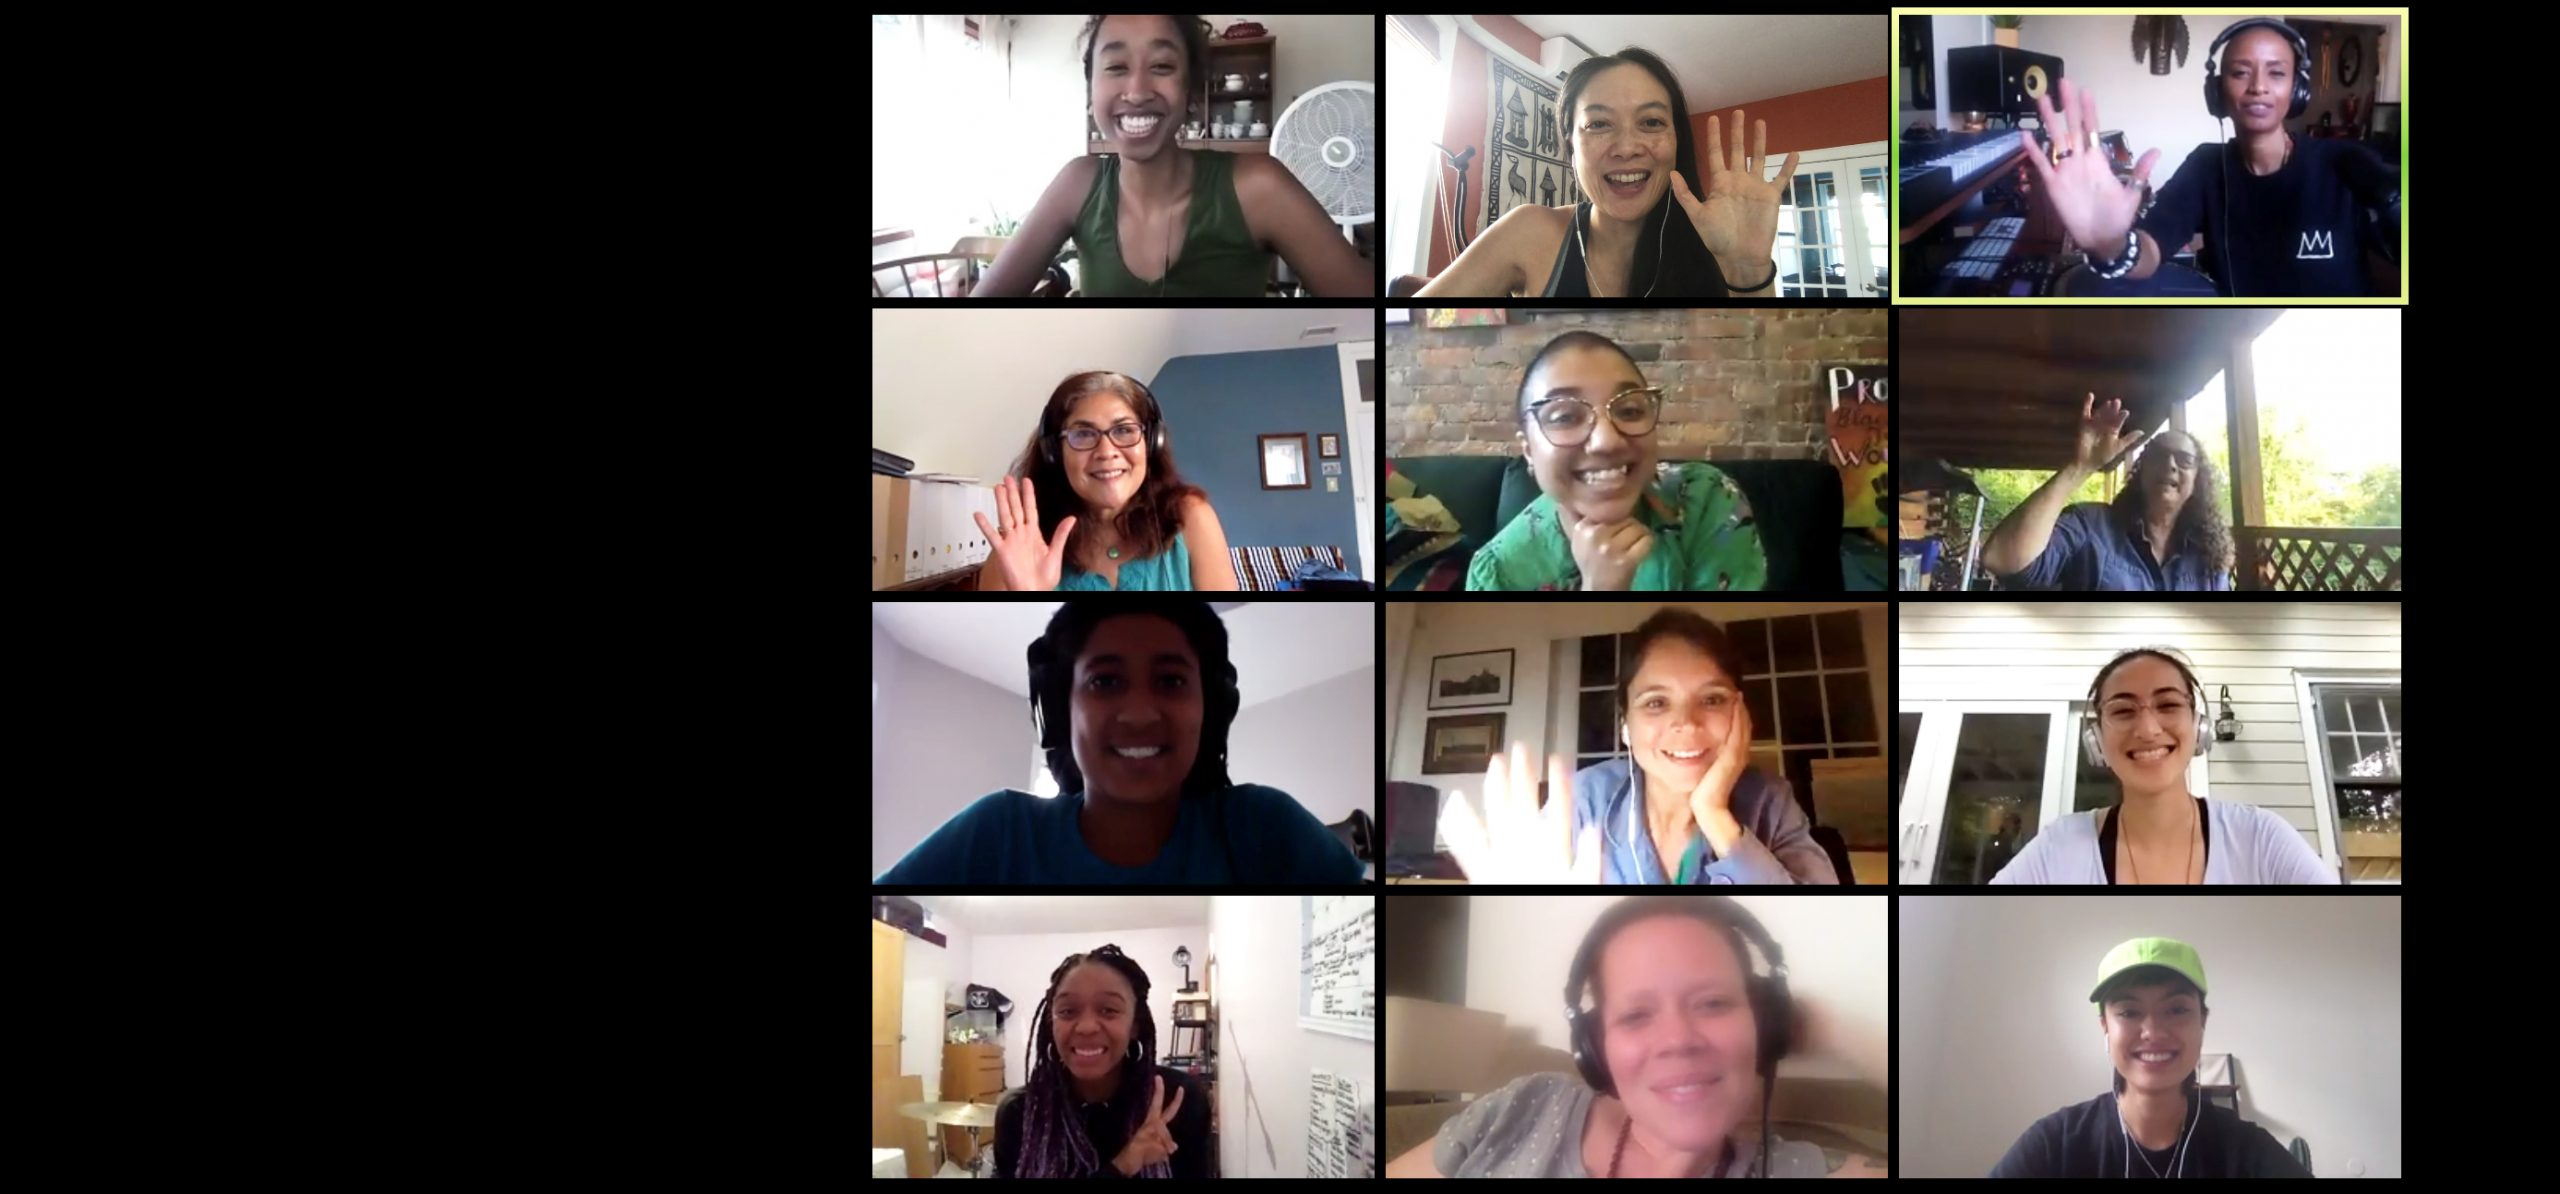 The twelve participating musicians in the M3 initiative during a Zoom meeting.